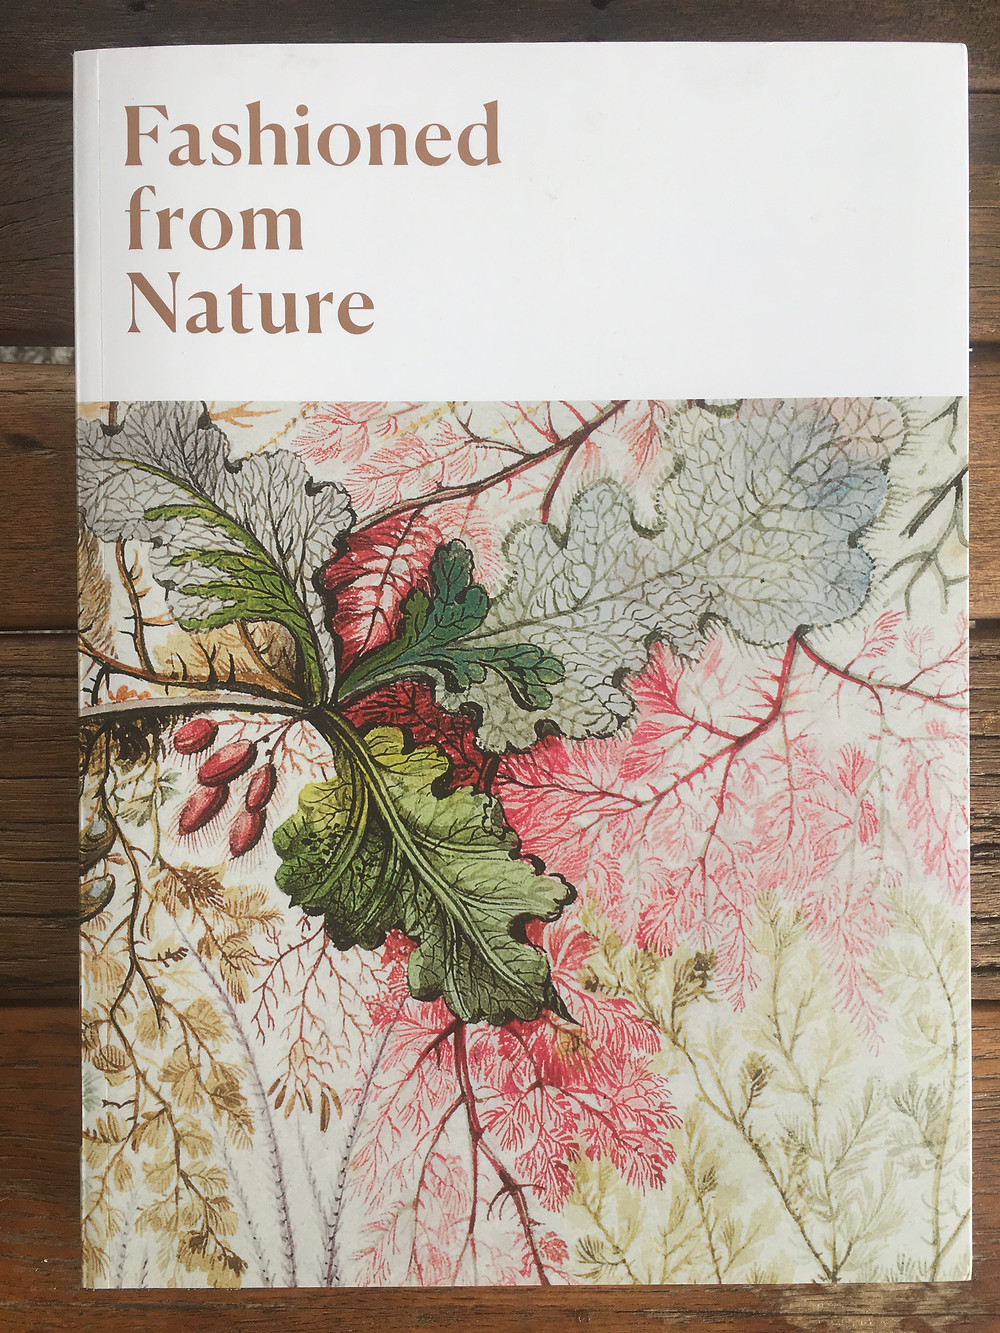 Fashioned from Nature book